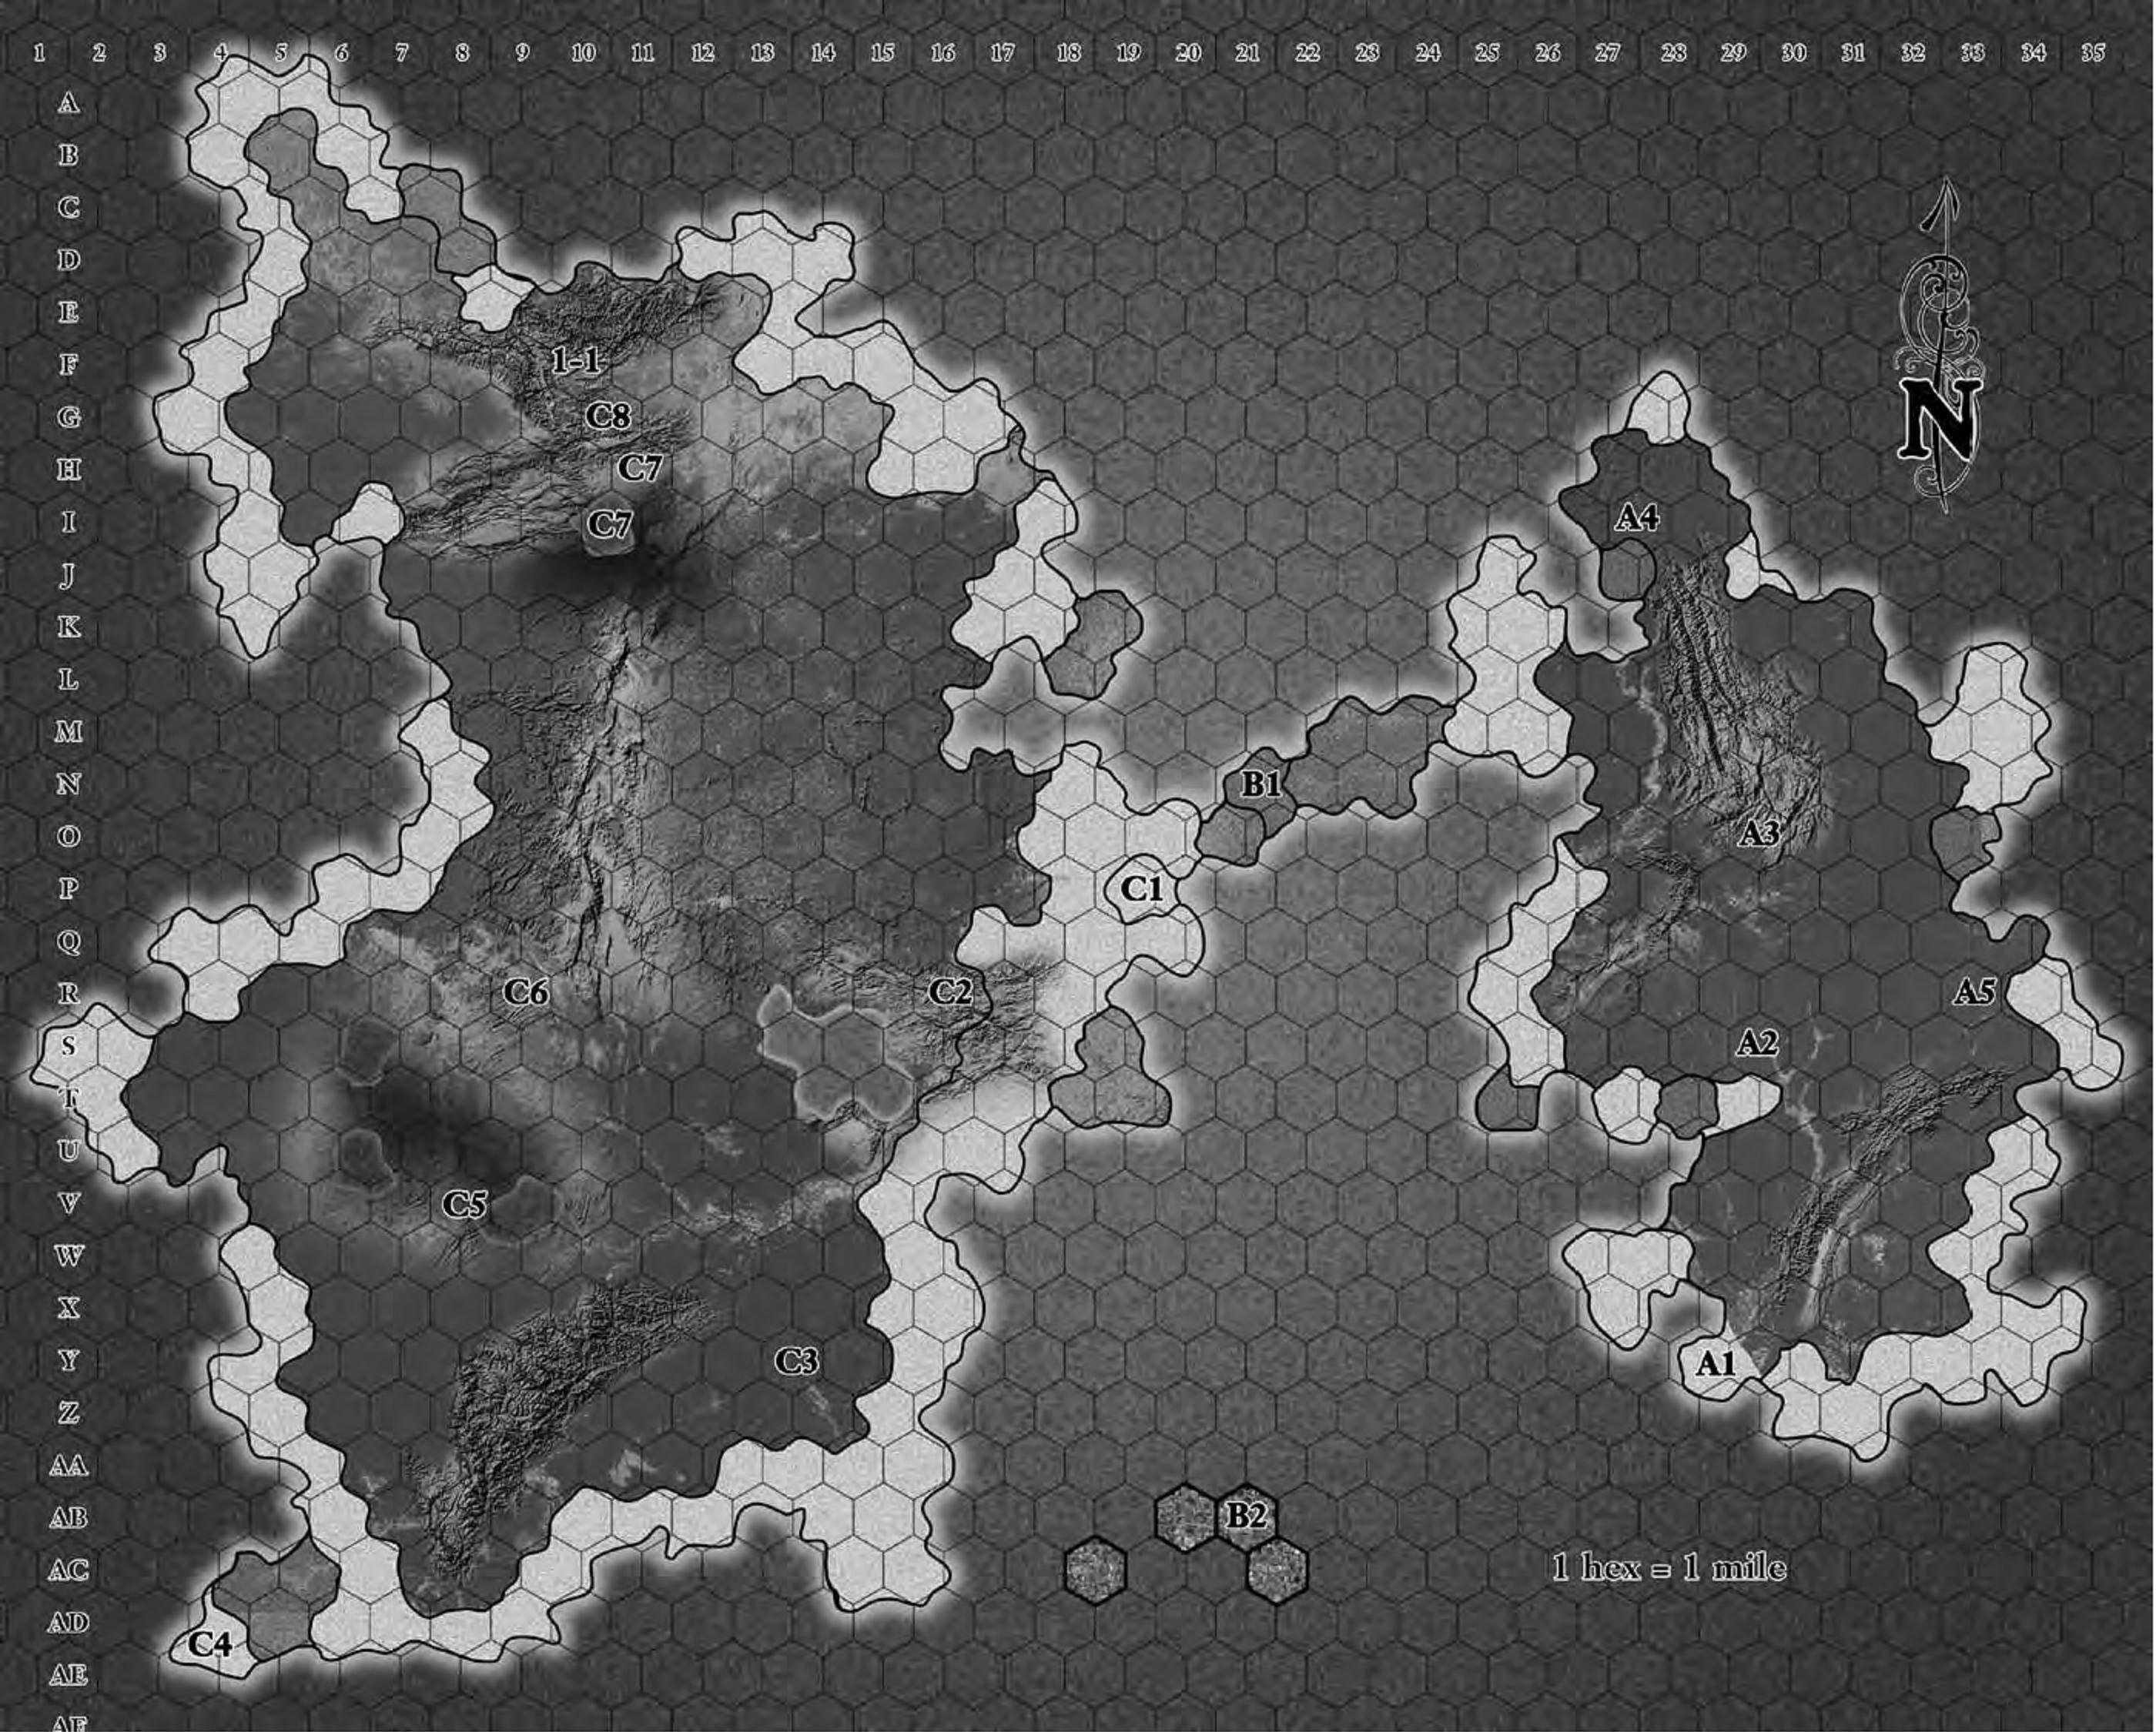 Isle_of_the_Sea_Drake_Hex_map.jpg